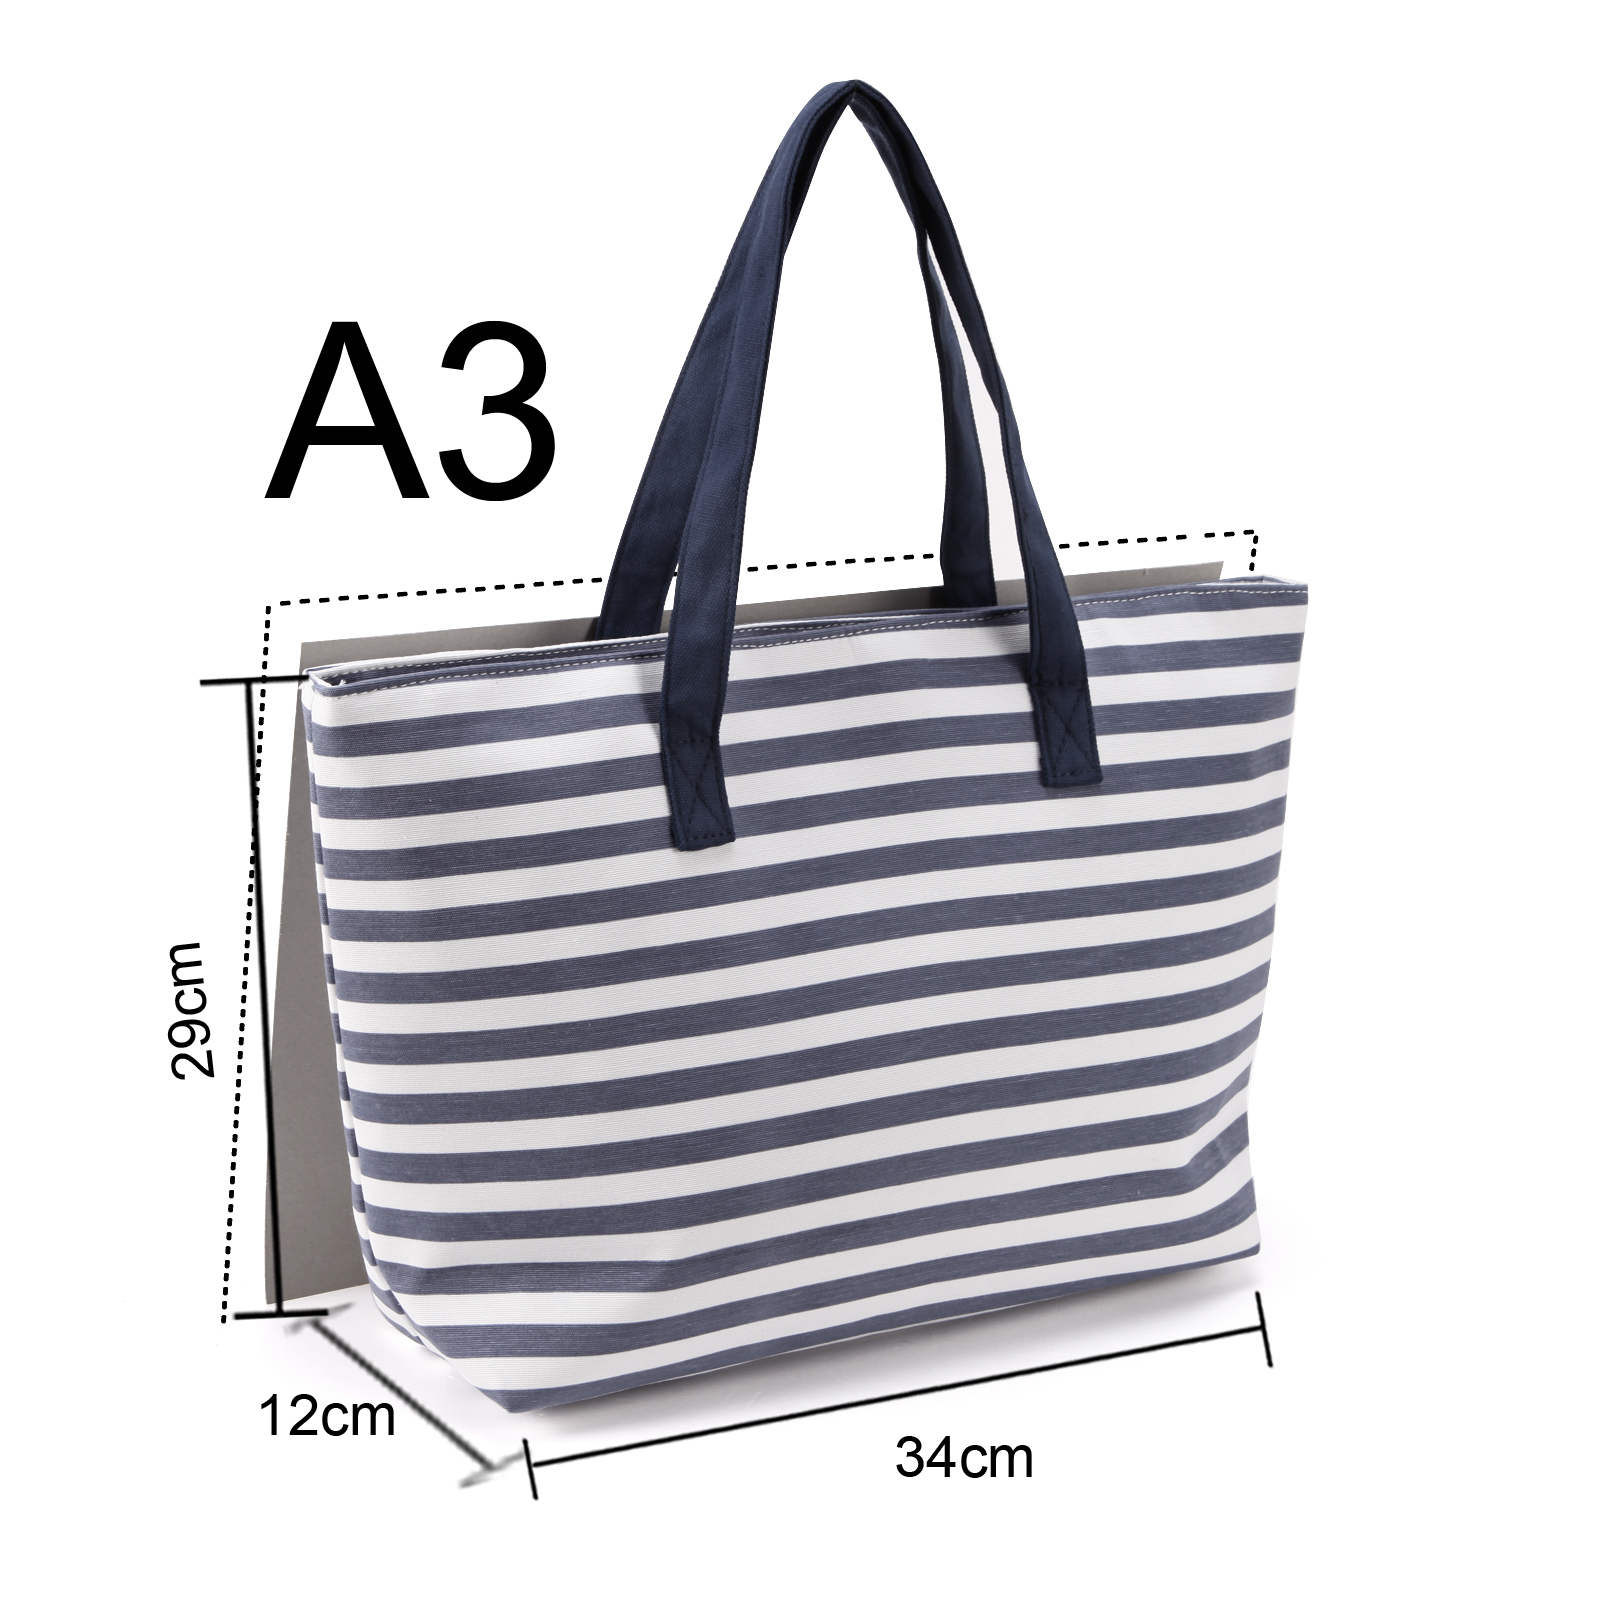 Stripes designer canvas summer beach shoulder bag tote for Designer beach bags and totes